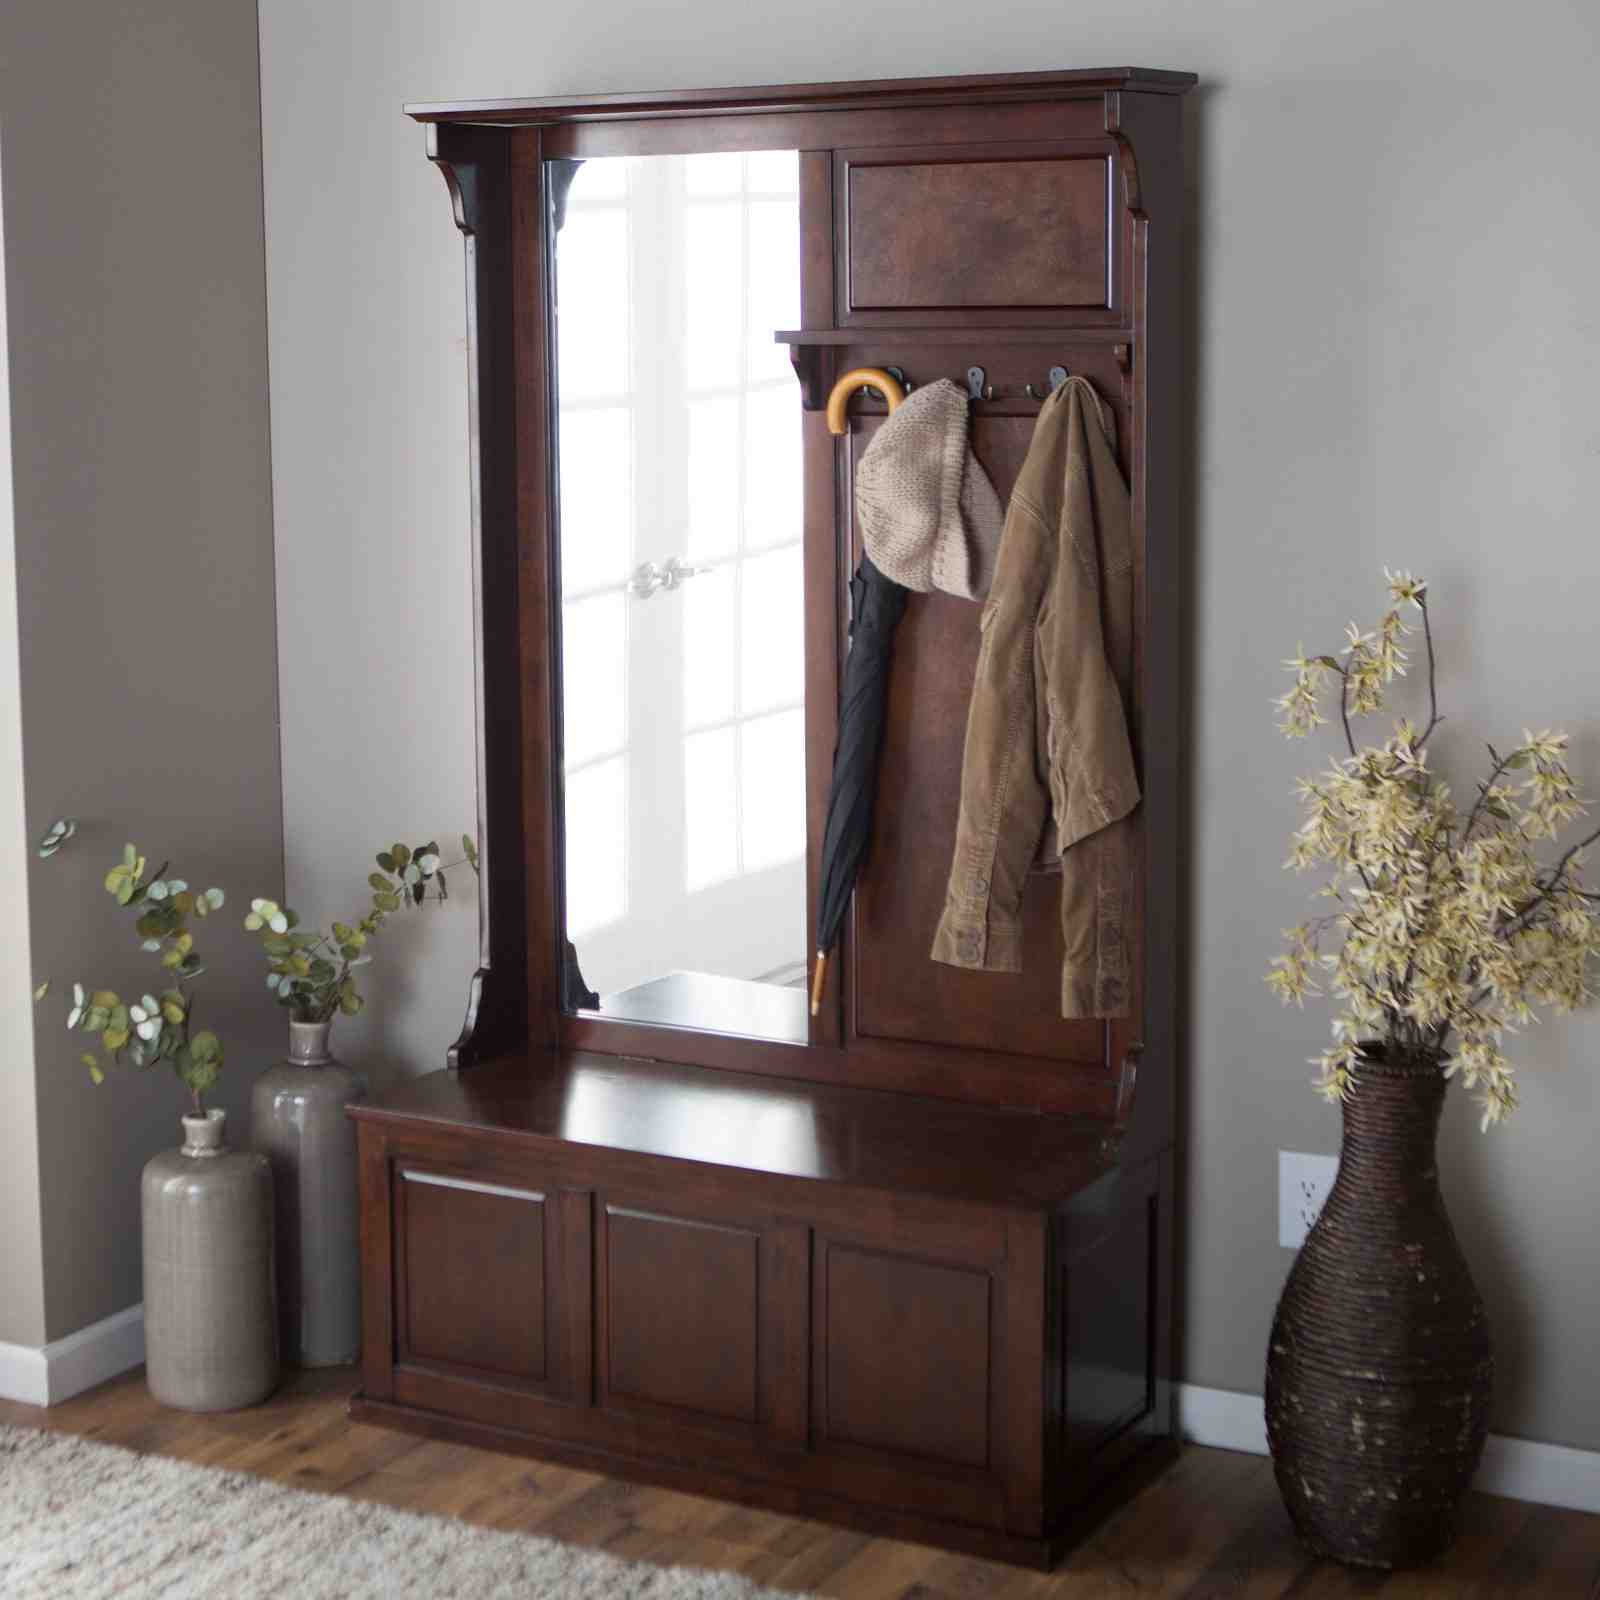 Hall tree storage bench how to purchase home furniture design - Furniture for front entryway ...